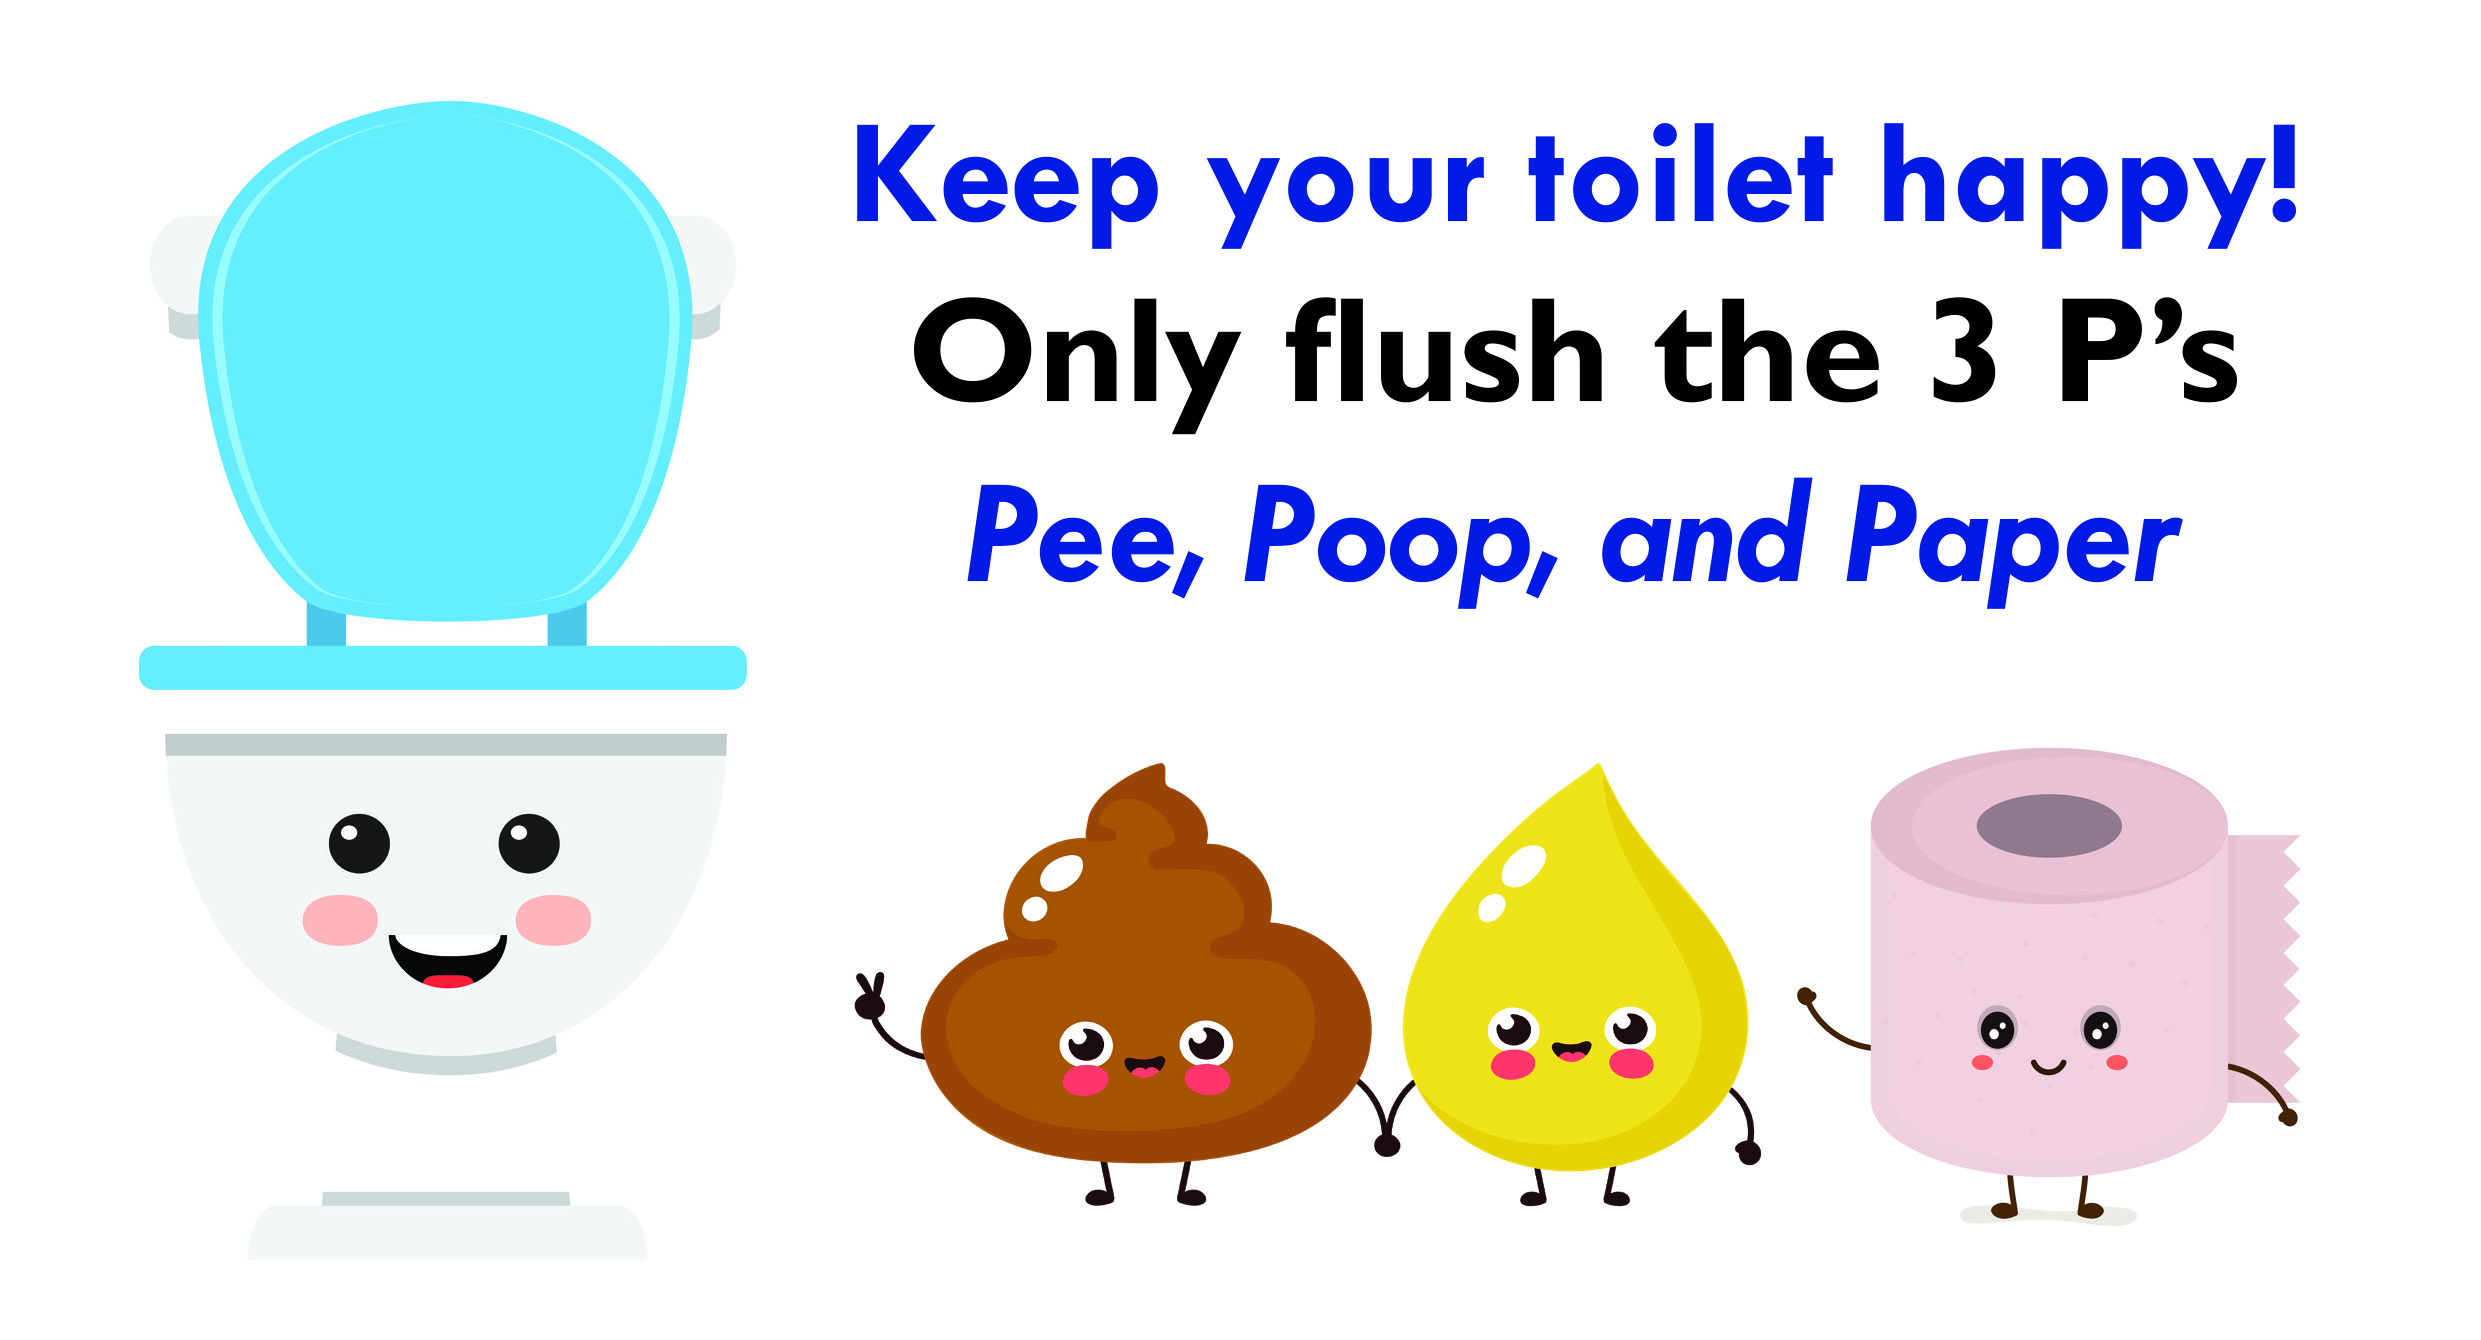 Keep your toilet happy by only flushing the 3 P's- pee, poop, and paper!